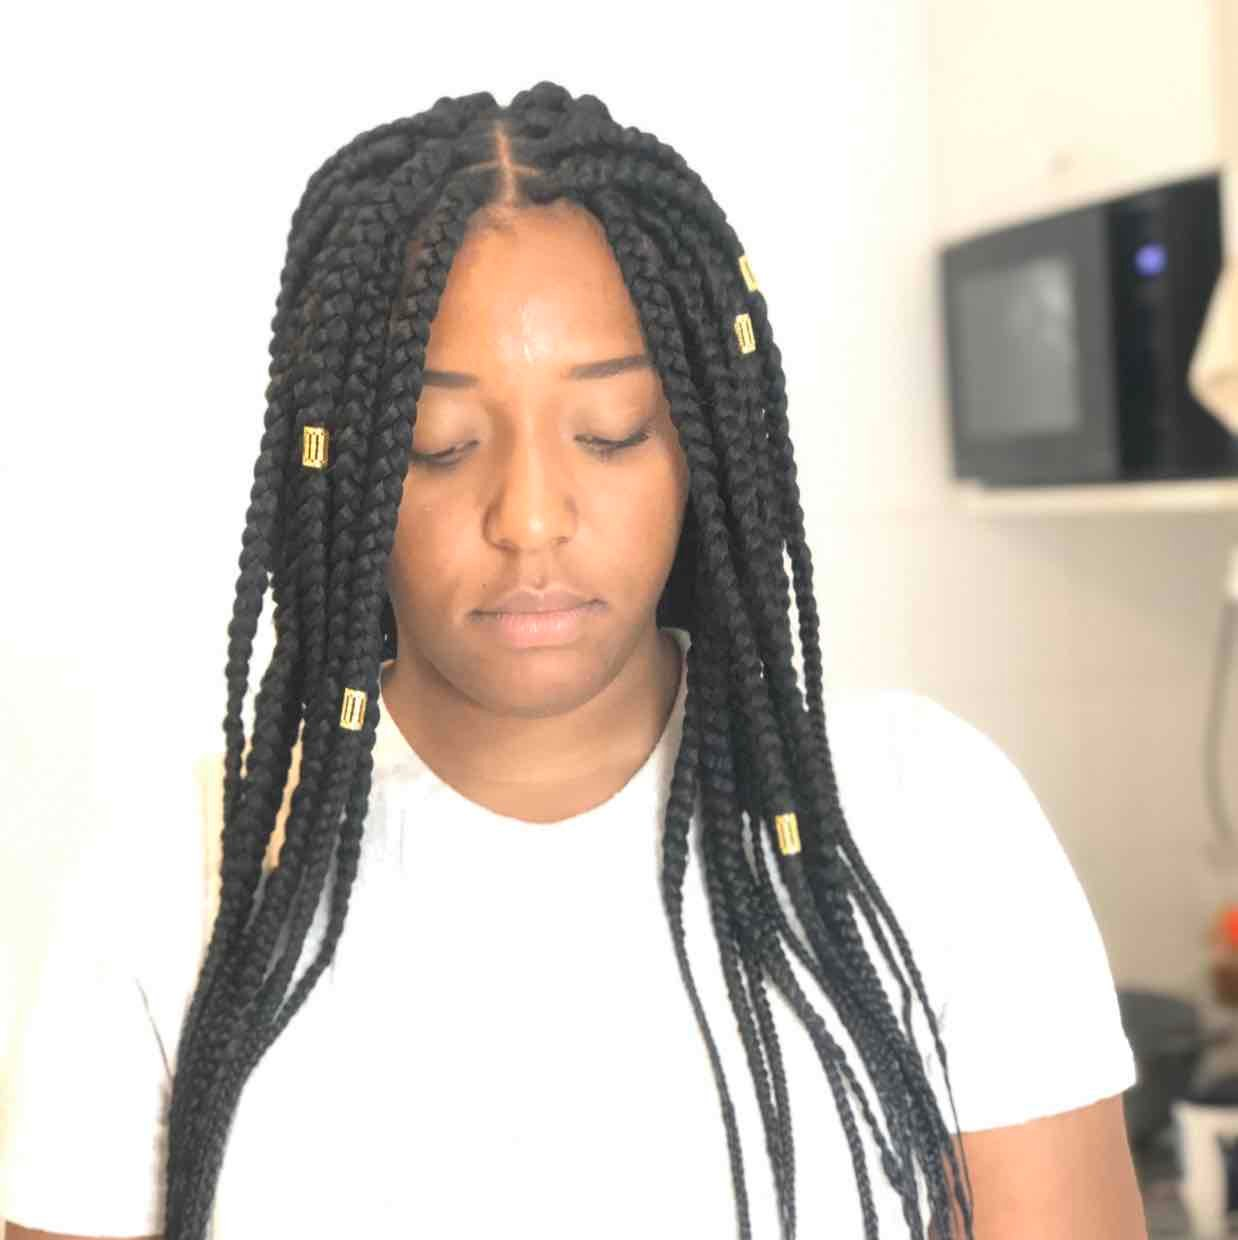 salon de coiffure afro tresse tresses box braids crochet braids vanilles tissages paris 75 77 78 91 92 93 94 95 QPHLPPYE